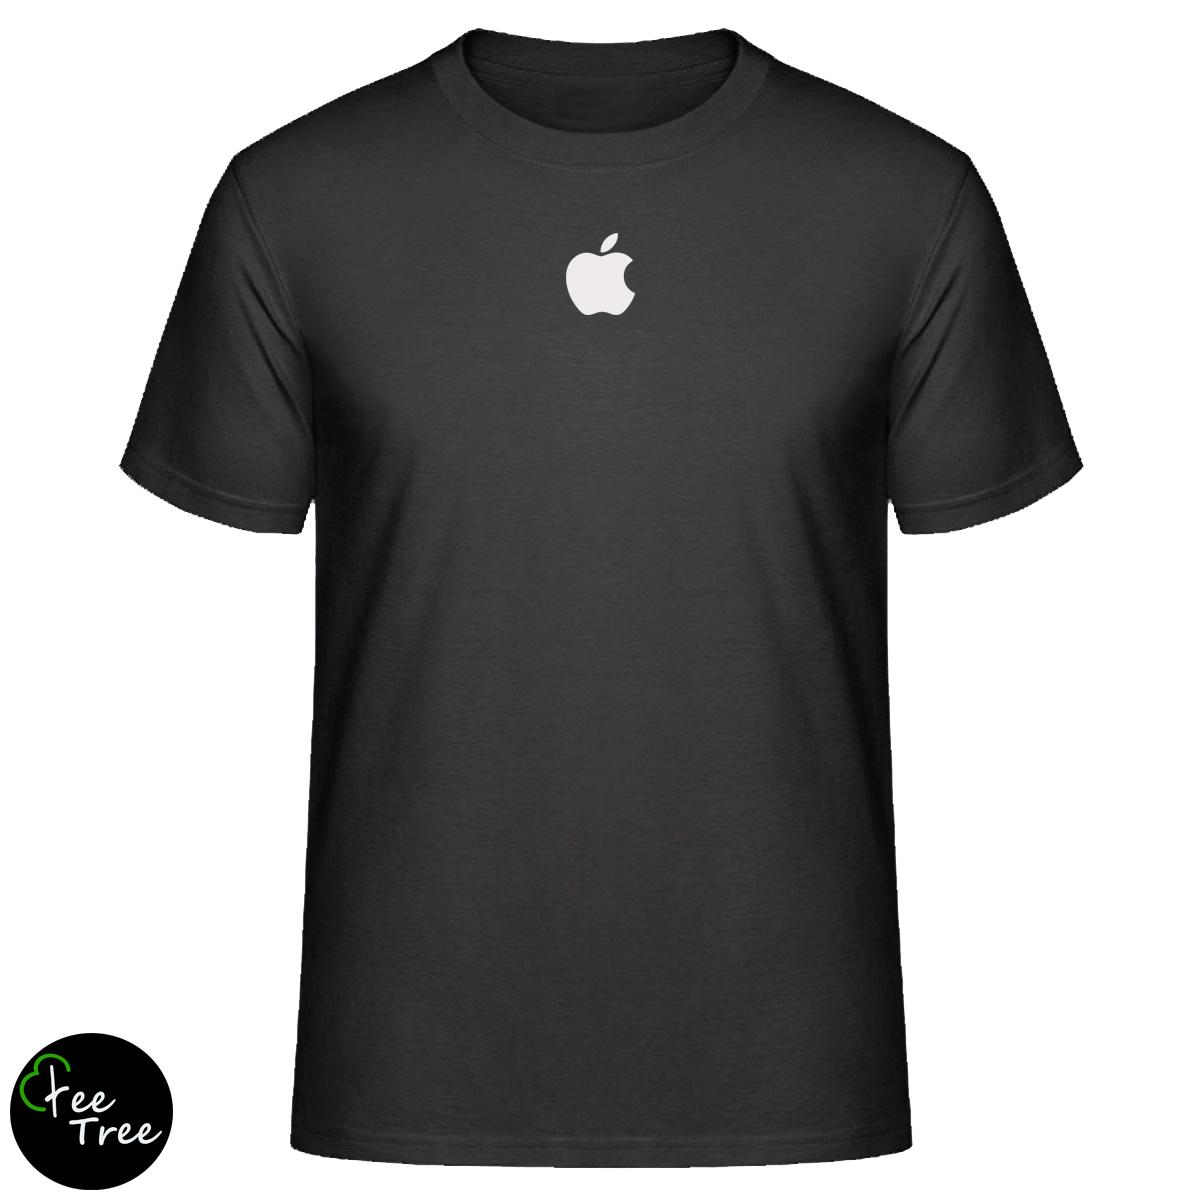 17a64c7a8 Apple iphone ipad logo mens   womens (unisex) cotton blend T-Shirt